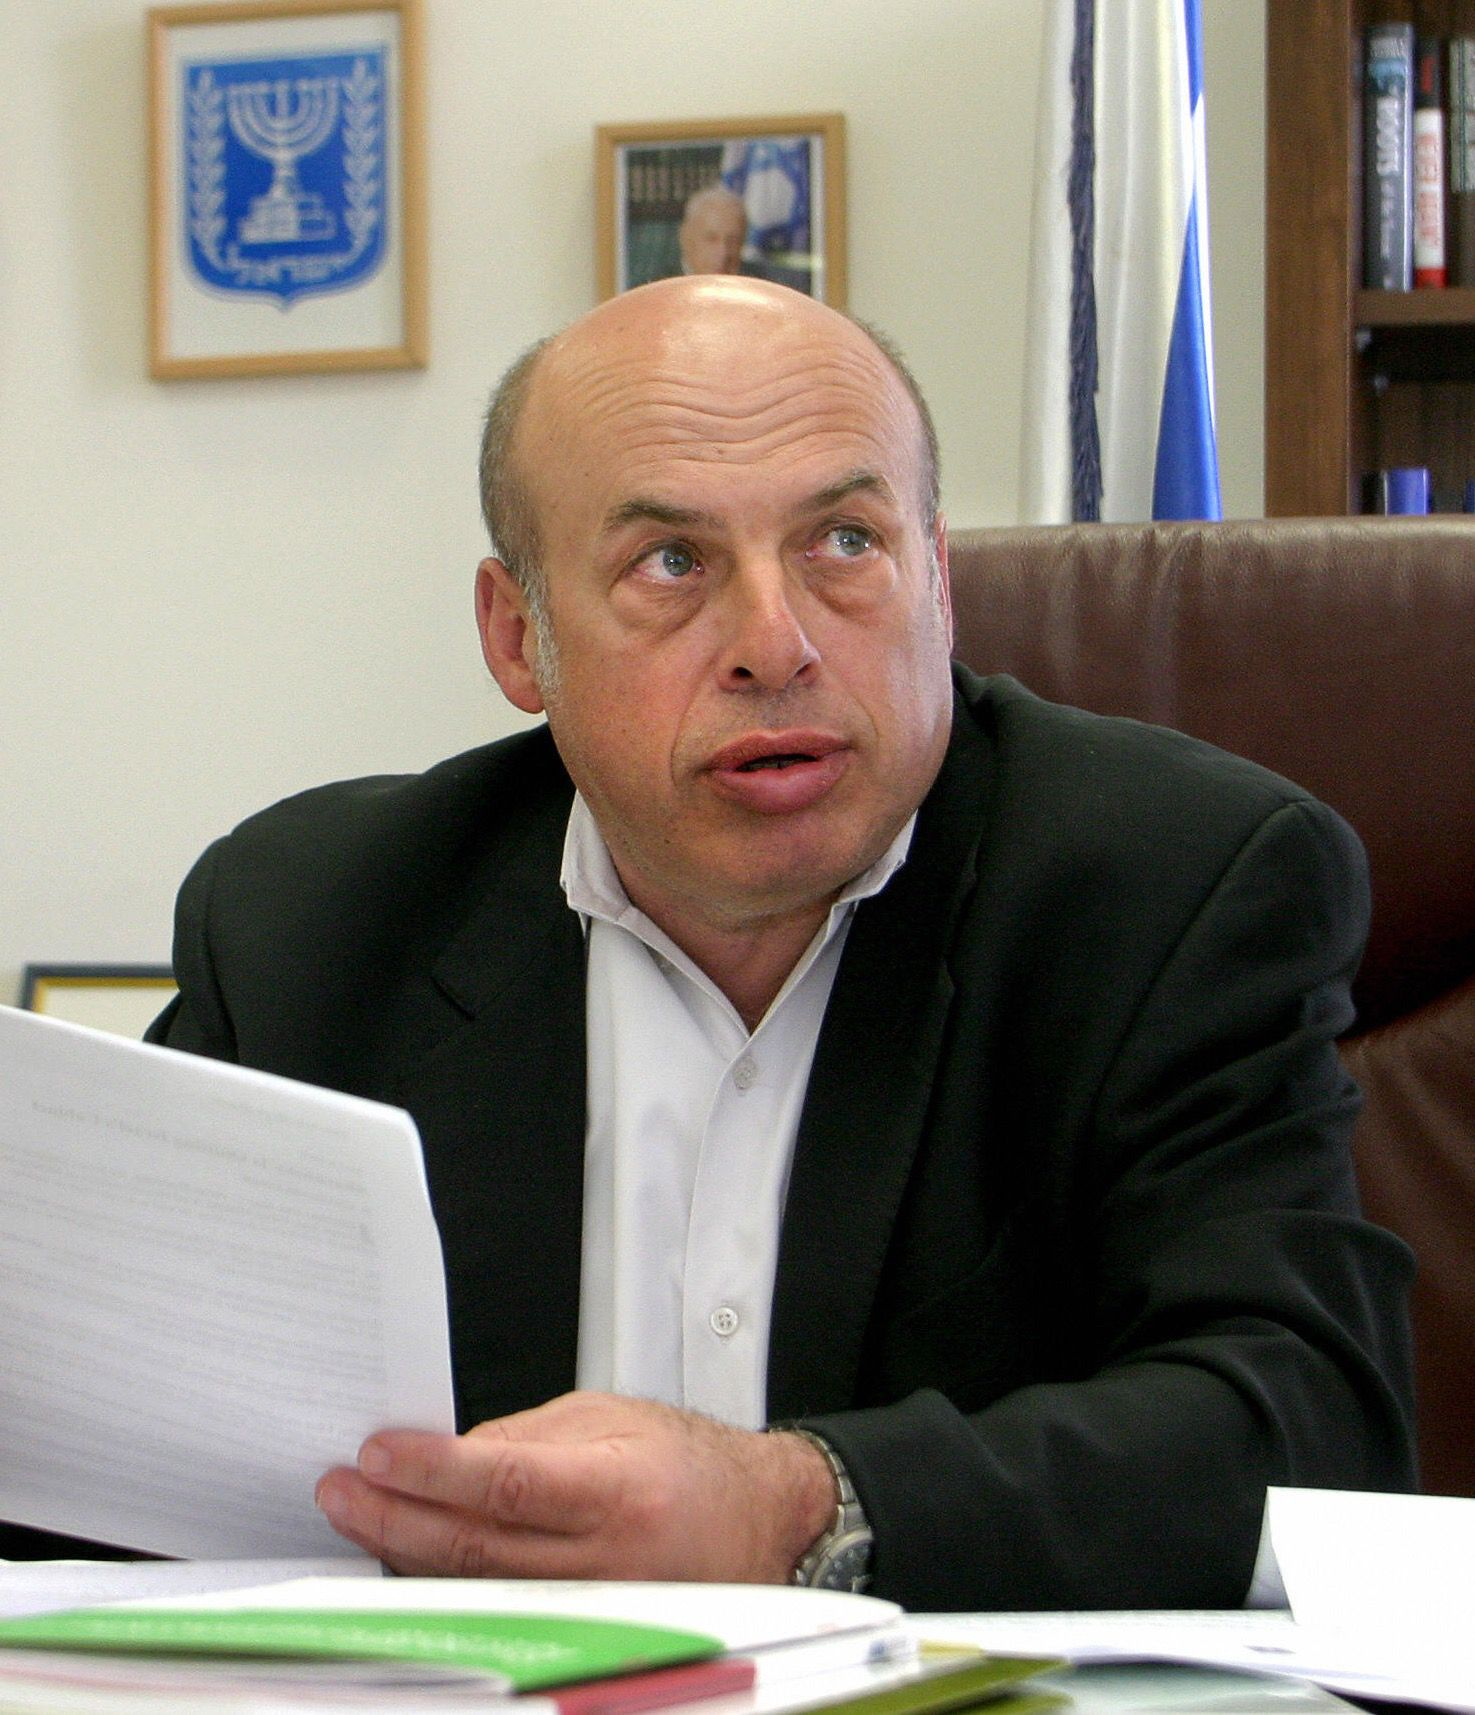 Chairman of the Jewish Agency for Israel Natan Sharansky